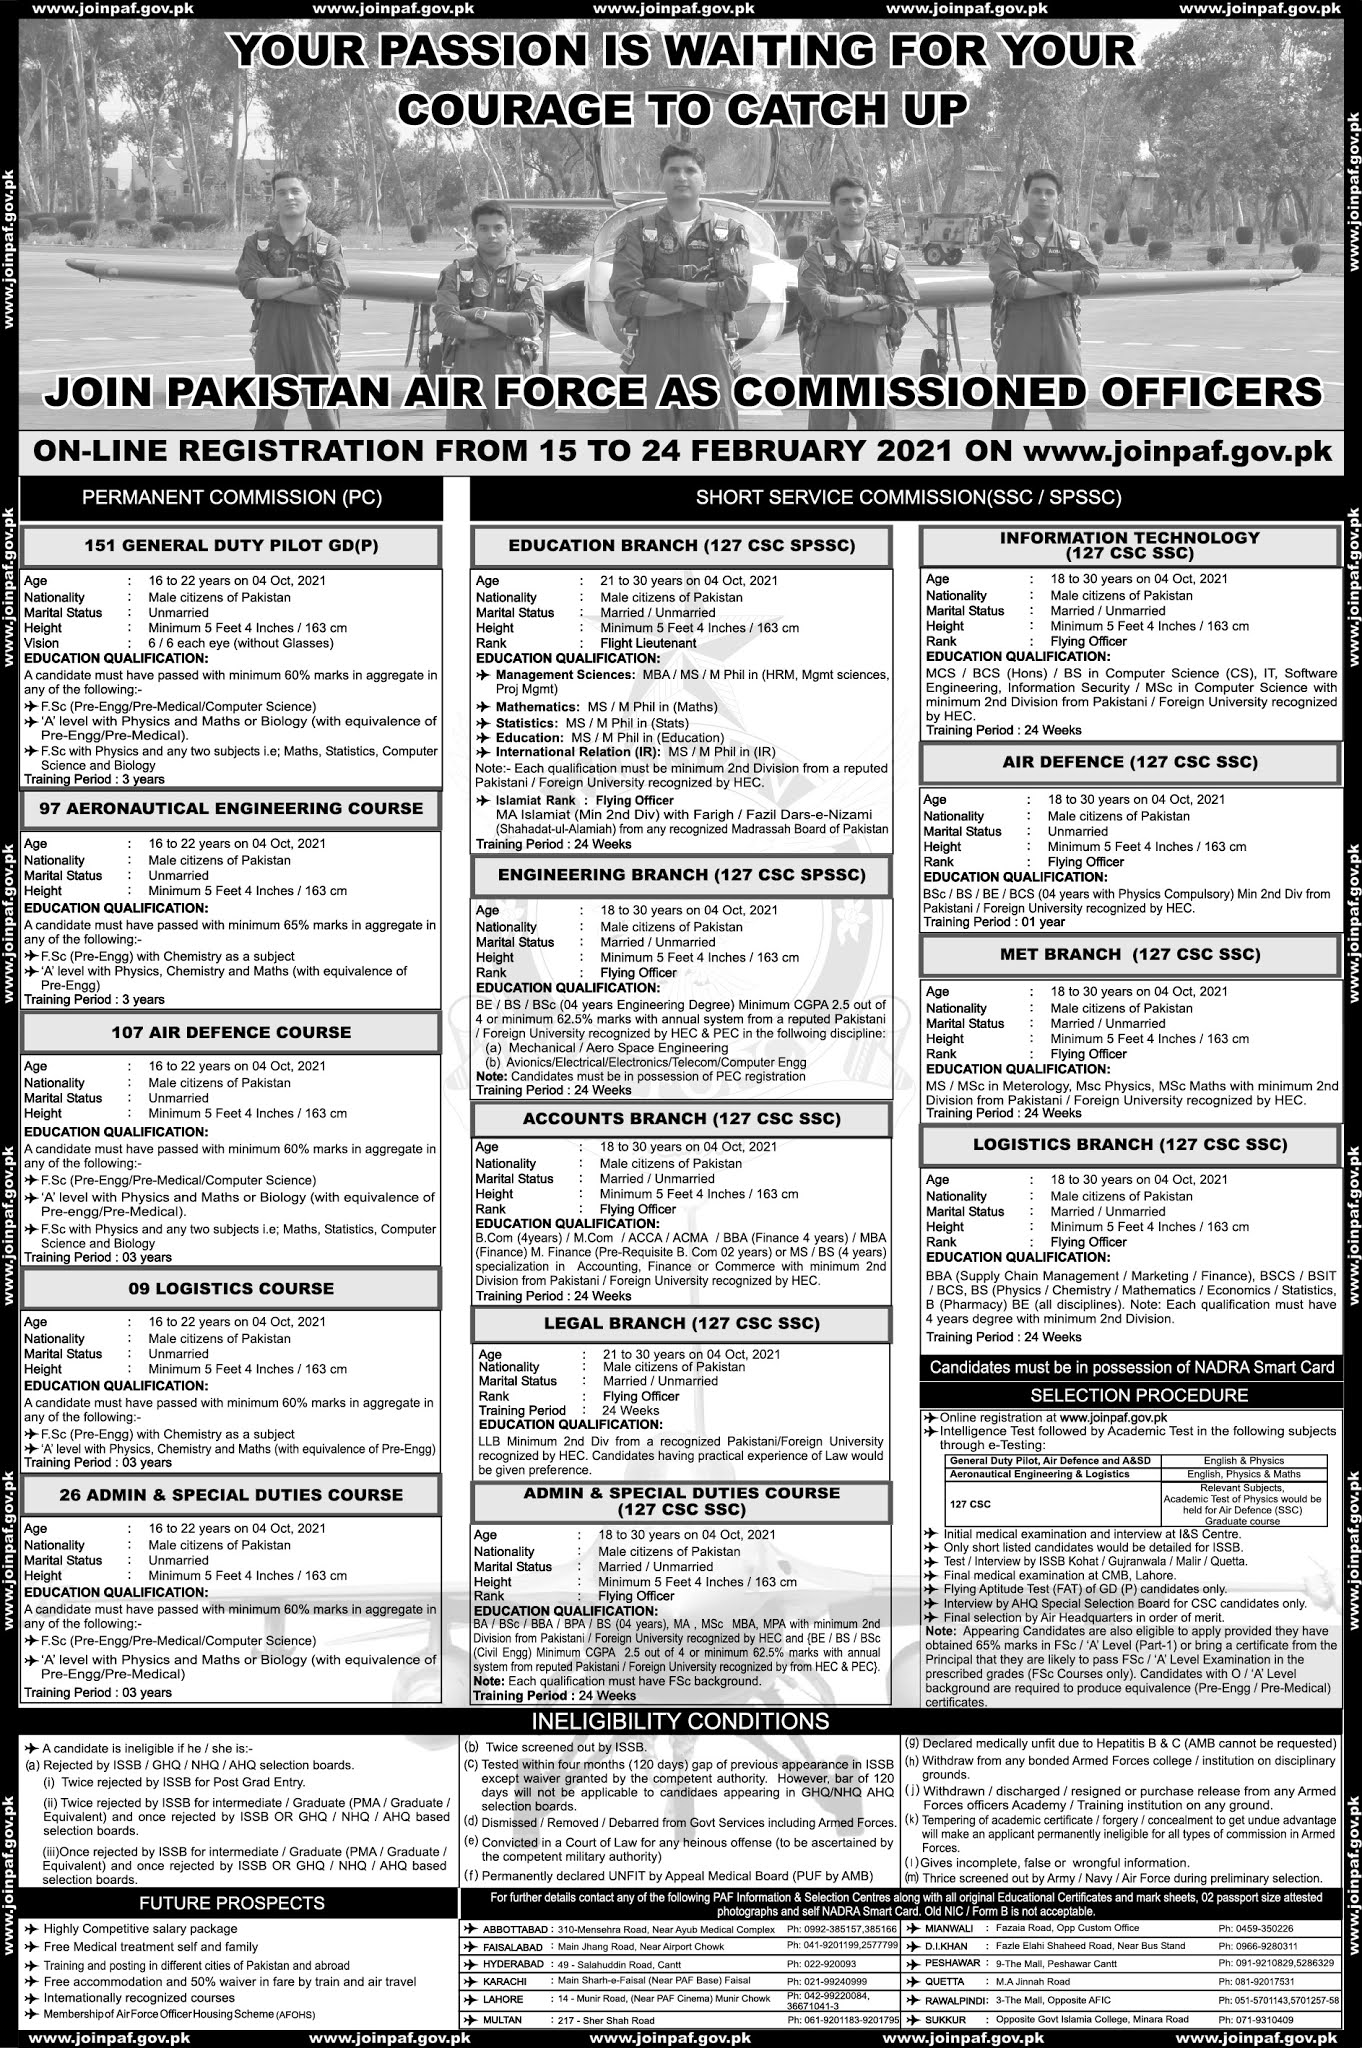 Join Pakistan Air Force Jobs 2021 As GD Pilot/Commissioned Officer